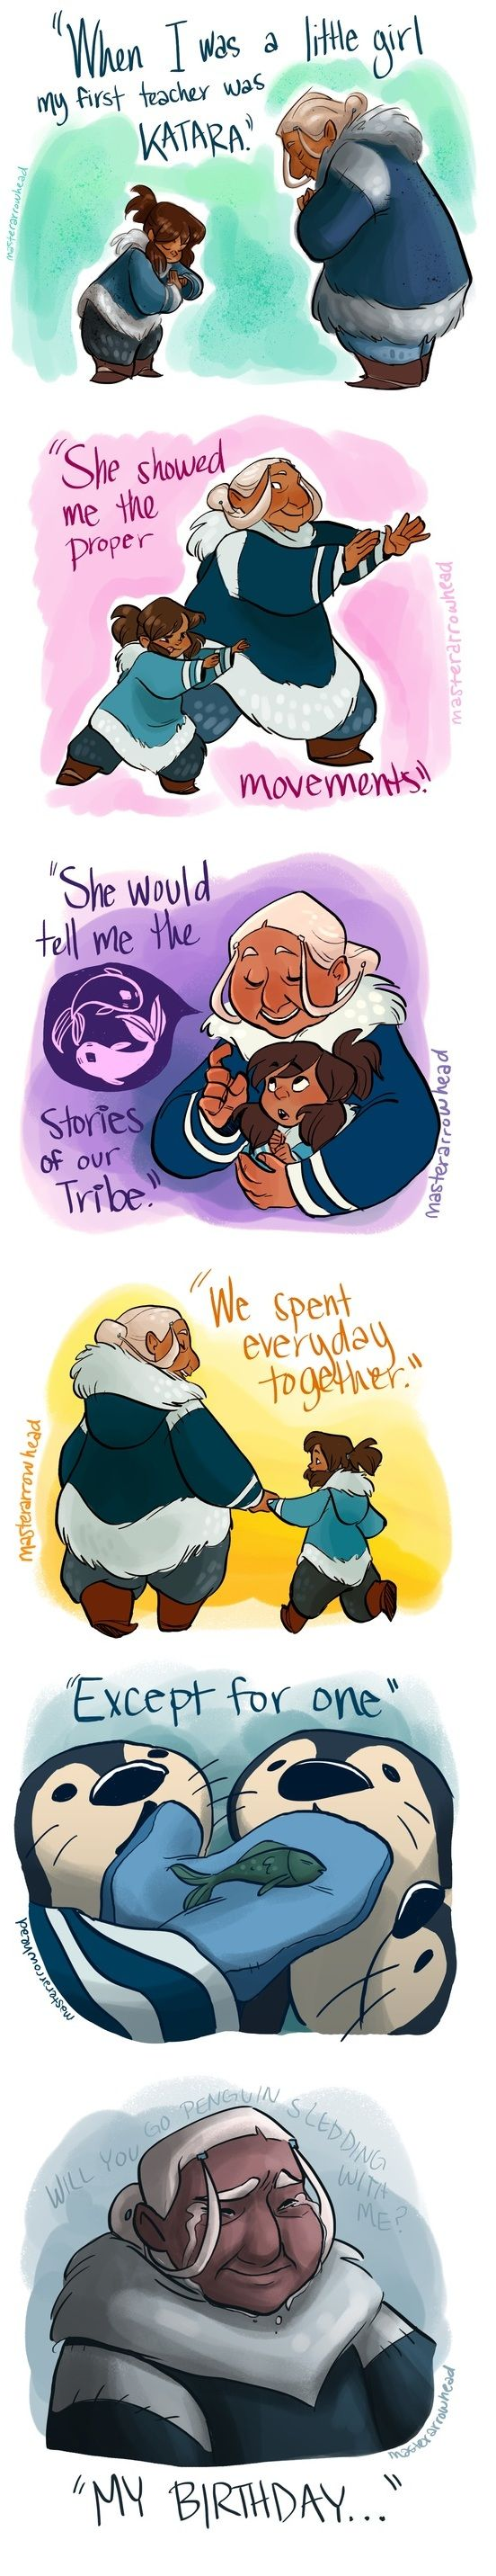 It took me a bit to get this one...It's because Korra was born on the day Aang died :,( so sad!